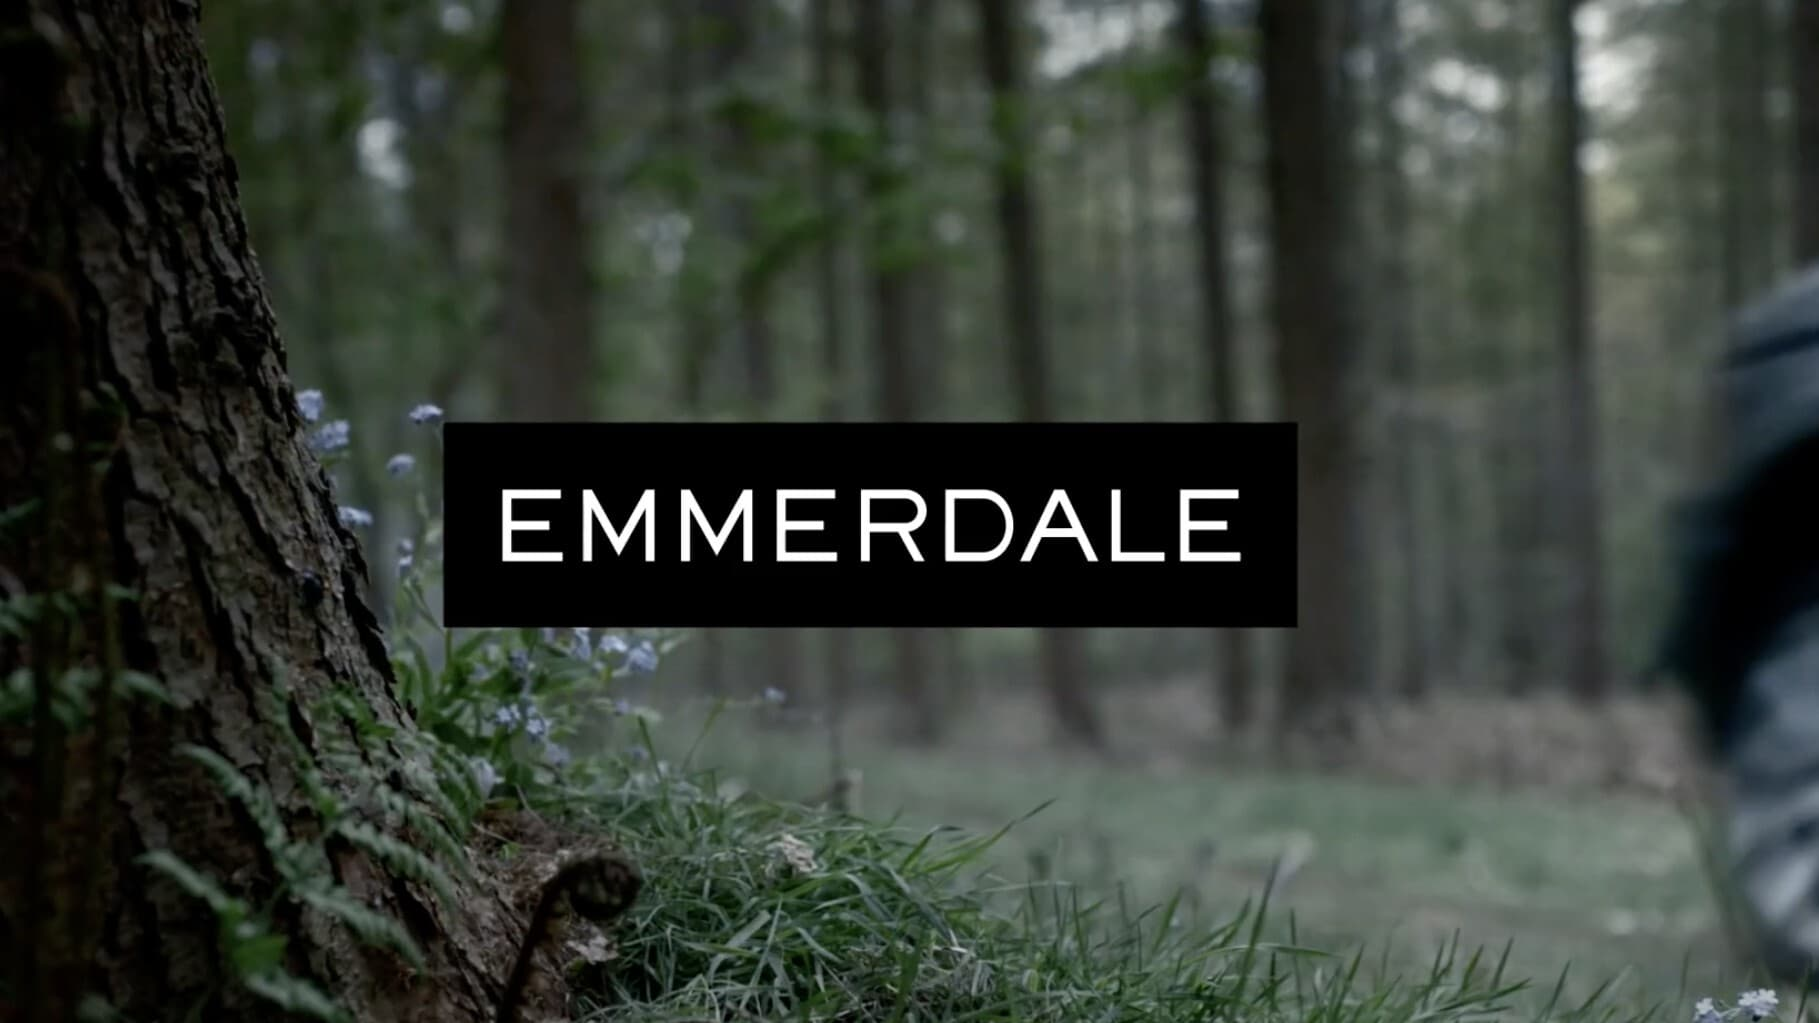 Emmerdale - Season 46 Episode 173 : Wednesday 10th July 2019